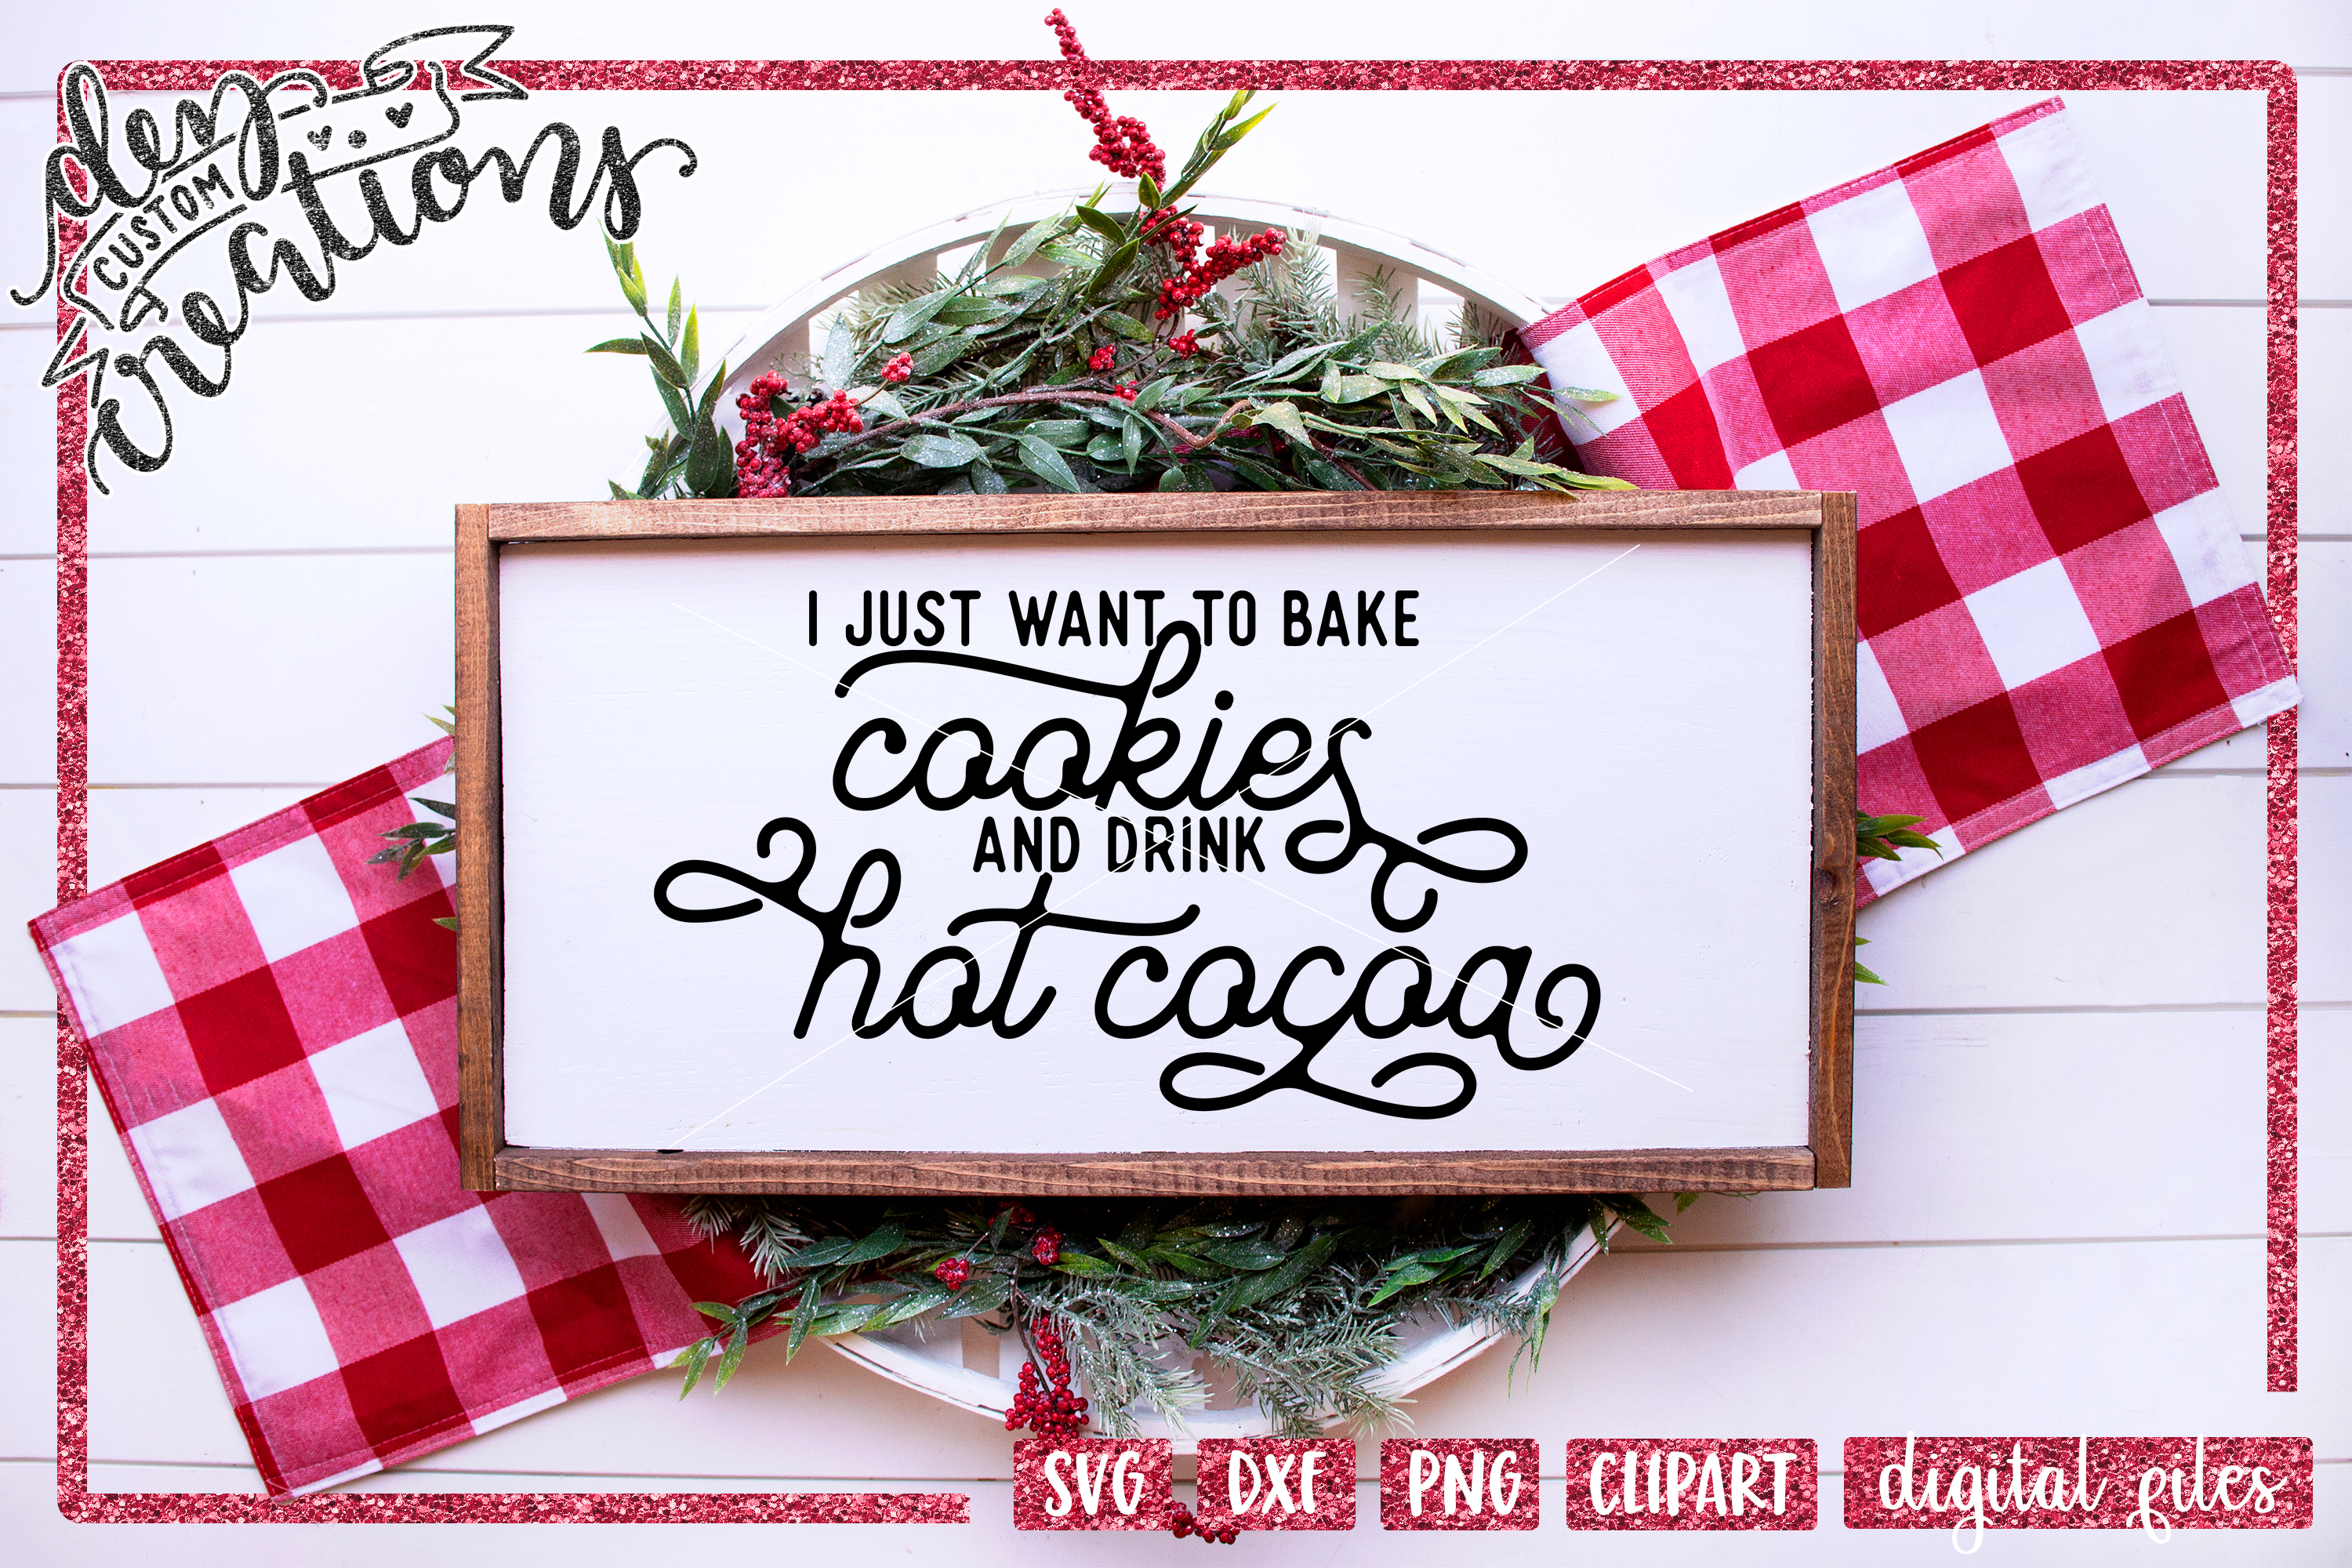 I Just Want to Bake Cookies and Drink Hot Cocoa - SVG example image 2